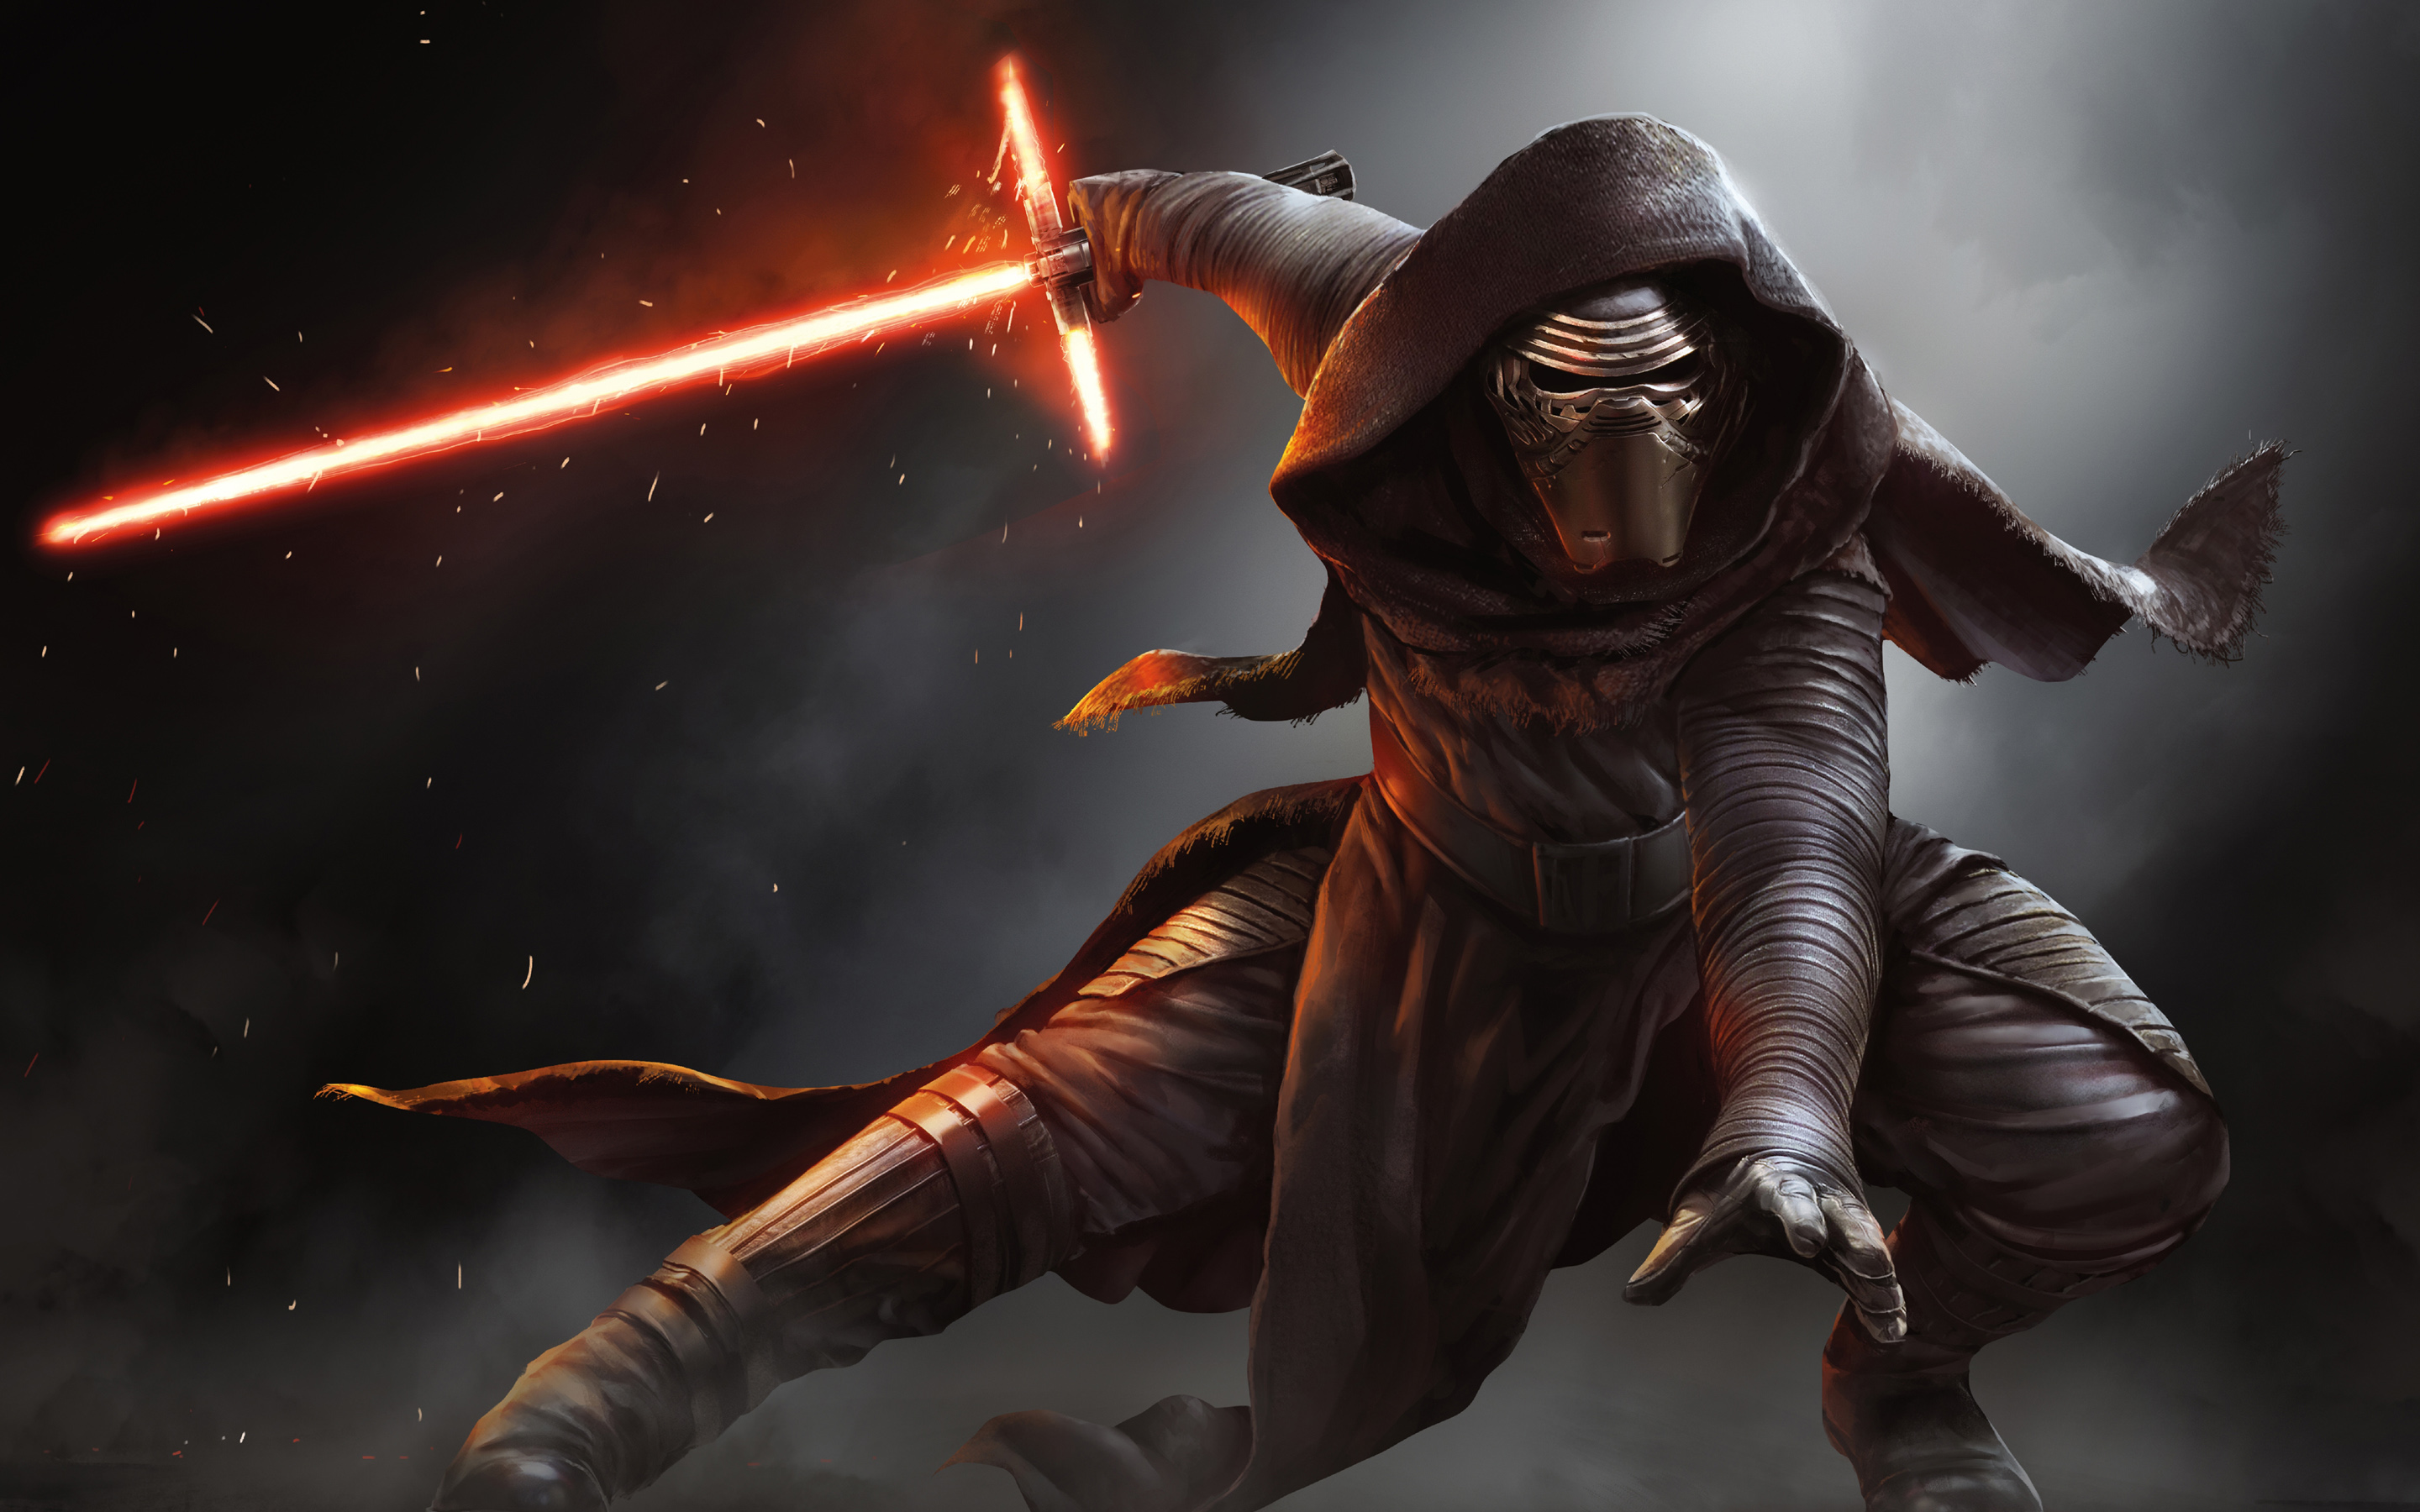 47 Kylo Ren Wallpaper On Wallpapersafari